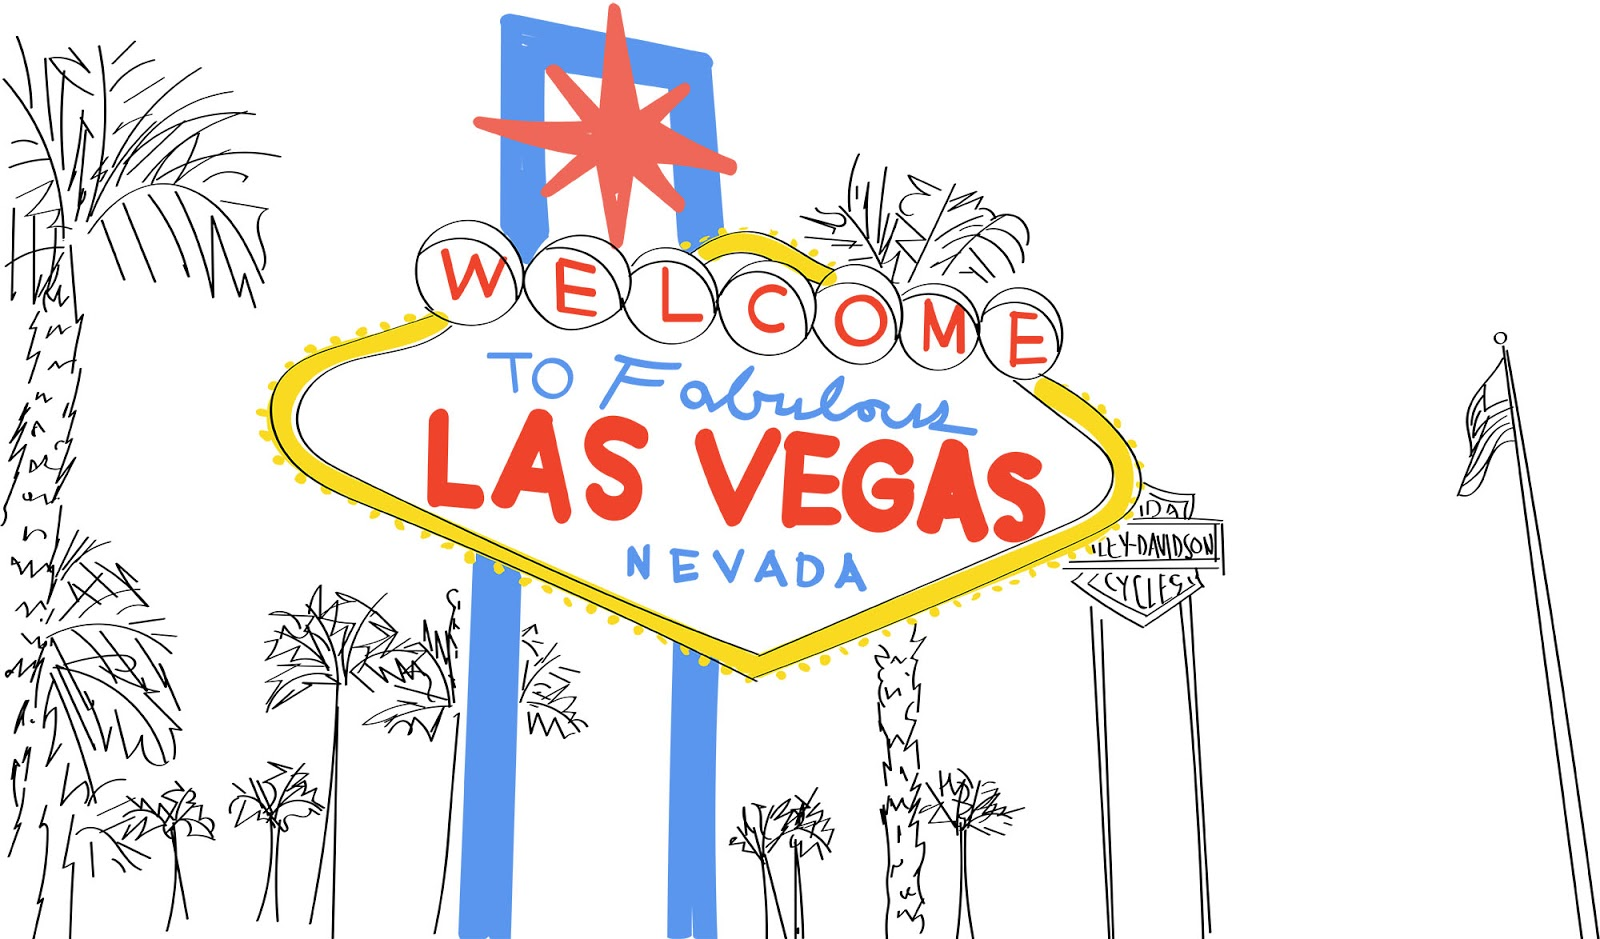 fabulous Las Vegas sign illustration